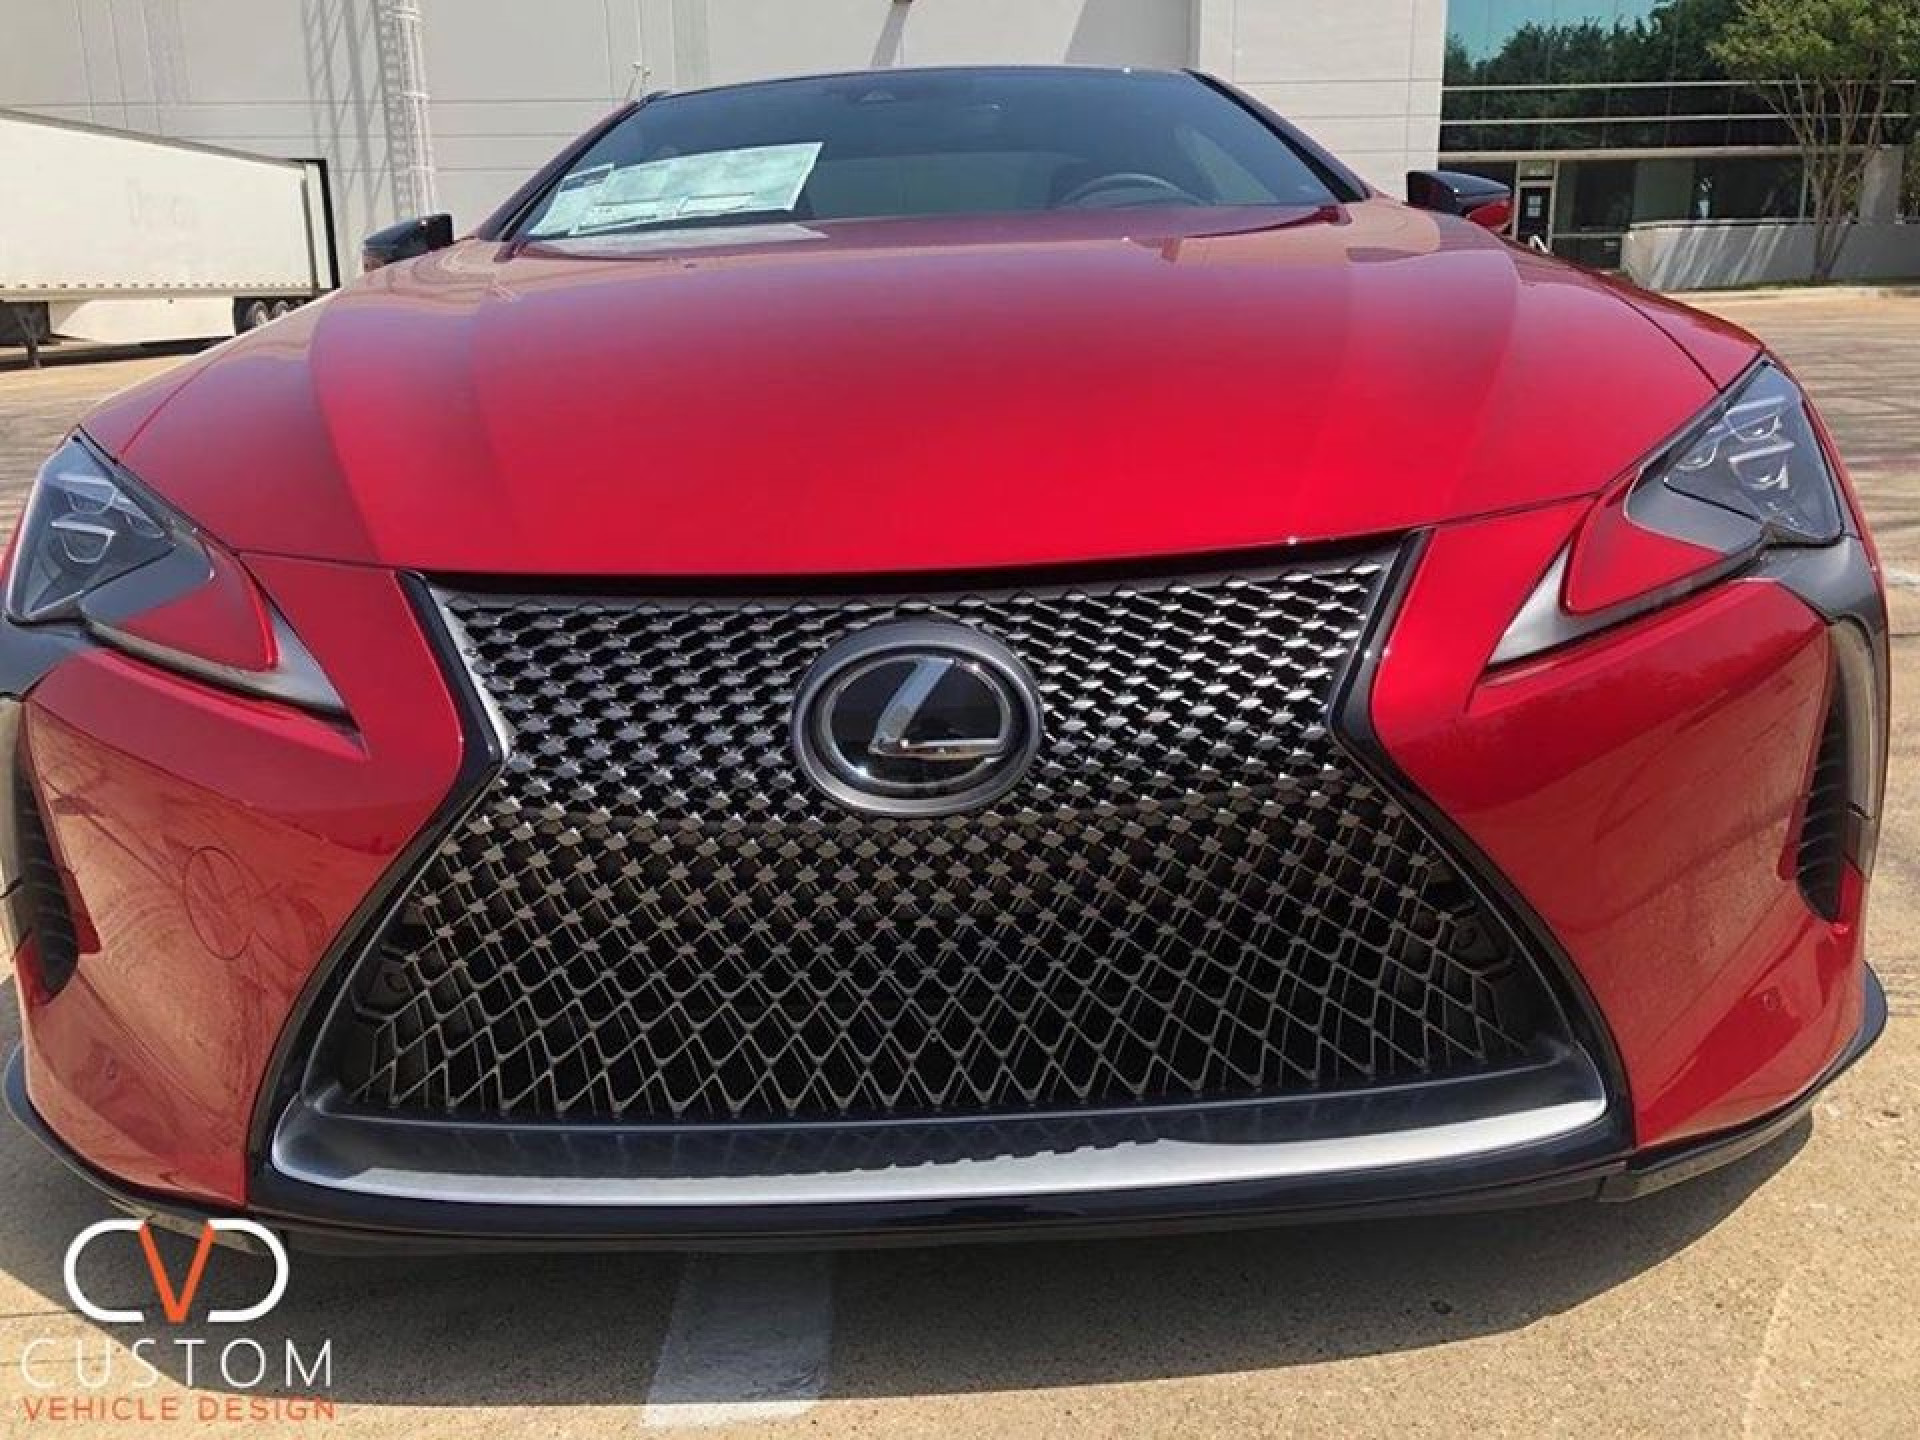 Lexus 2019 LC500 from Park Place Grapevine Lexus with Vossen HF-2 wheels